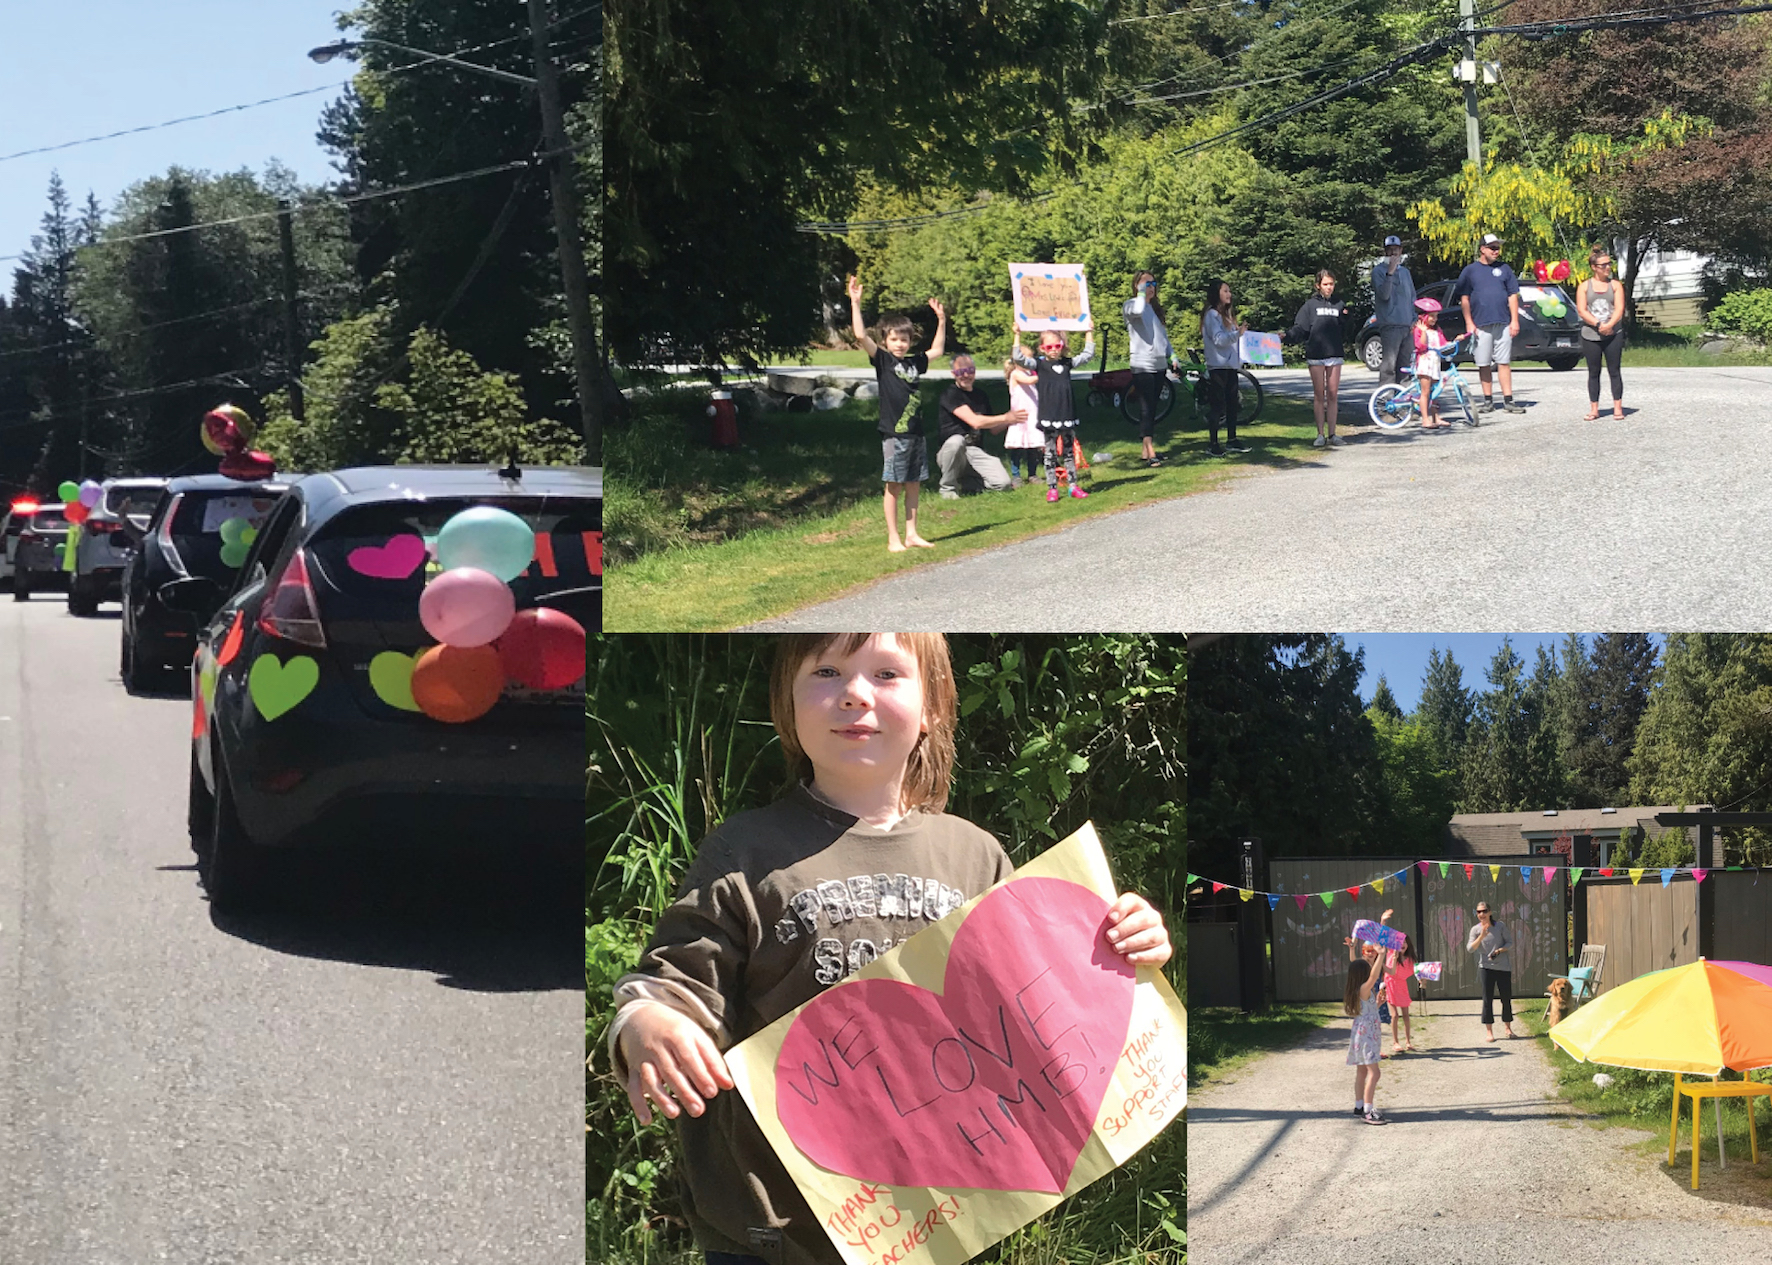 Halfmoon Bay Elementary Parade. Principal Brisebois commented: 'There were so many smiling faces and friendly cheers. We can't wait until we can be together again! We miss our families.'